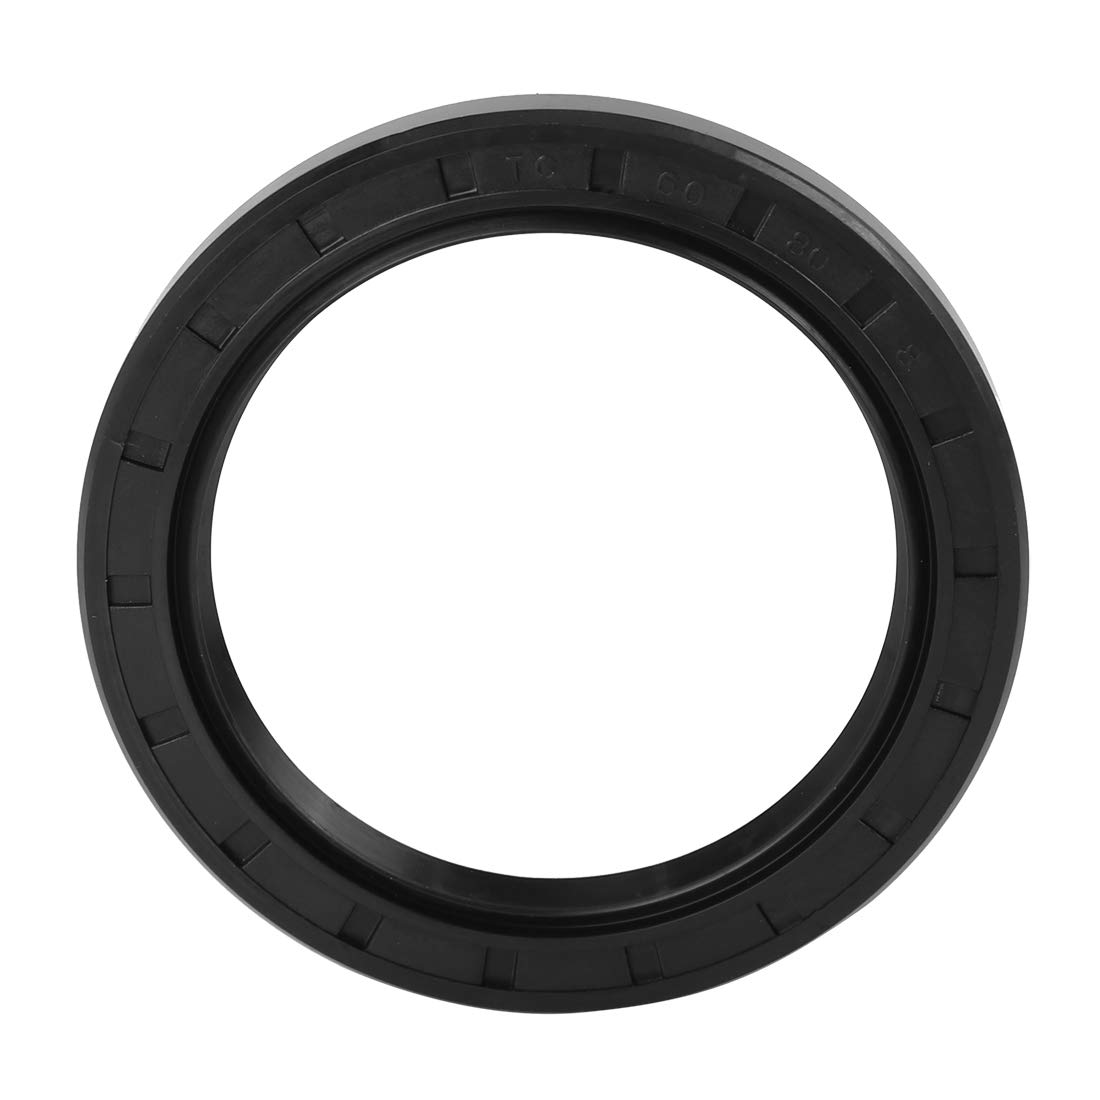 X AUTOHAUX 50mm X 70mm X 8mm Rubber Cover Double Lip TC Oil Shaft Seal for Car